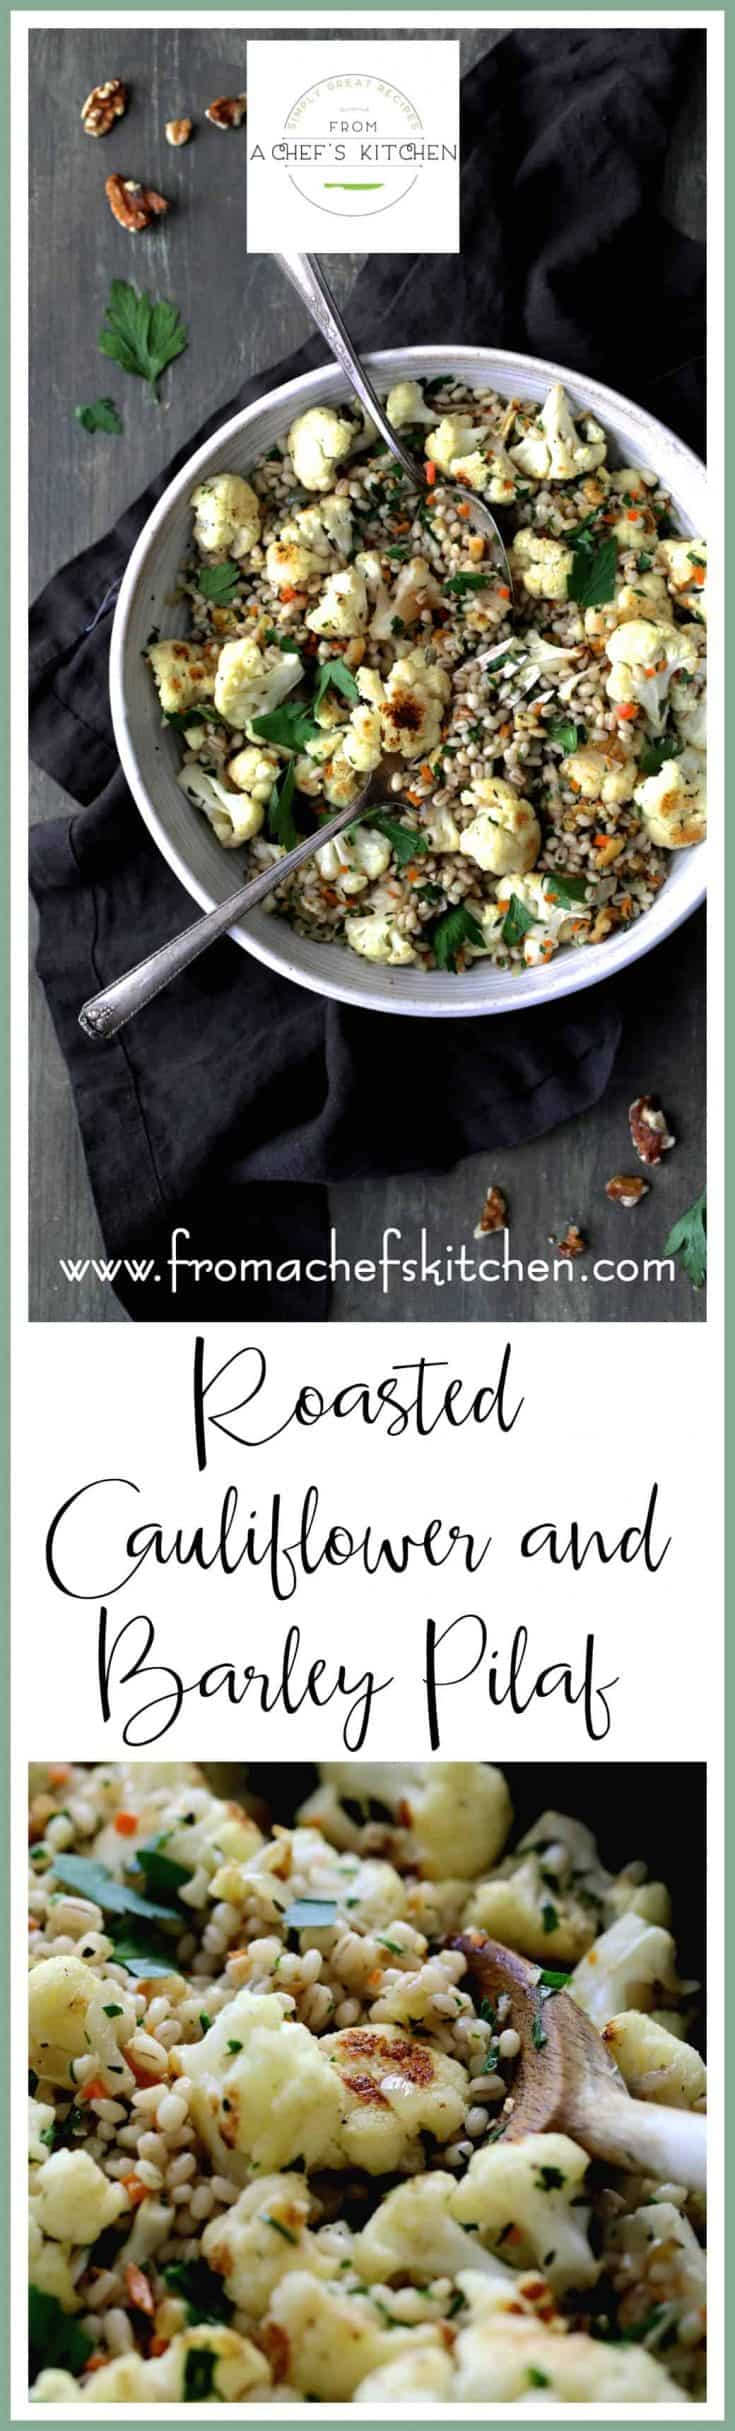 Roasted Cauliflower and Barley Pilaf is a beautiful fall-inspired side dish that's perfect with fish, poultry or roasted meats or as a vegetarian main dish. #cauliflower #roastedcauliflower #barley #pilaf #vegetarian #sidedish